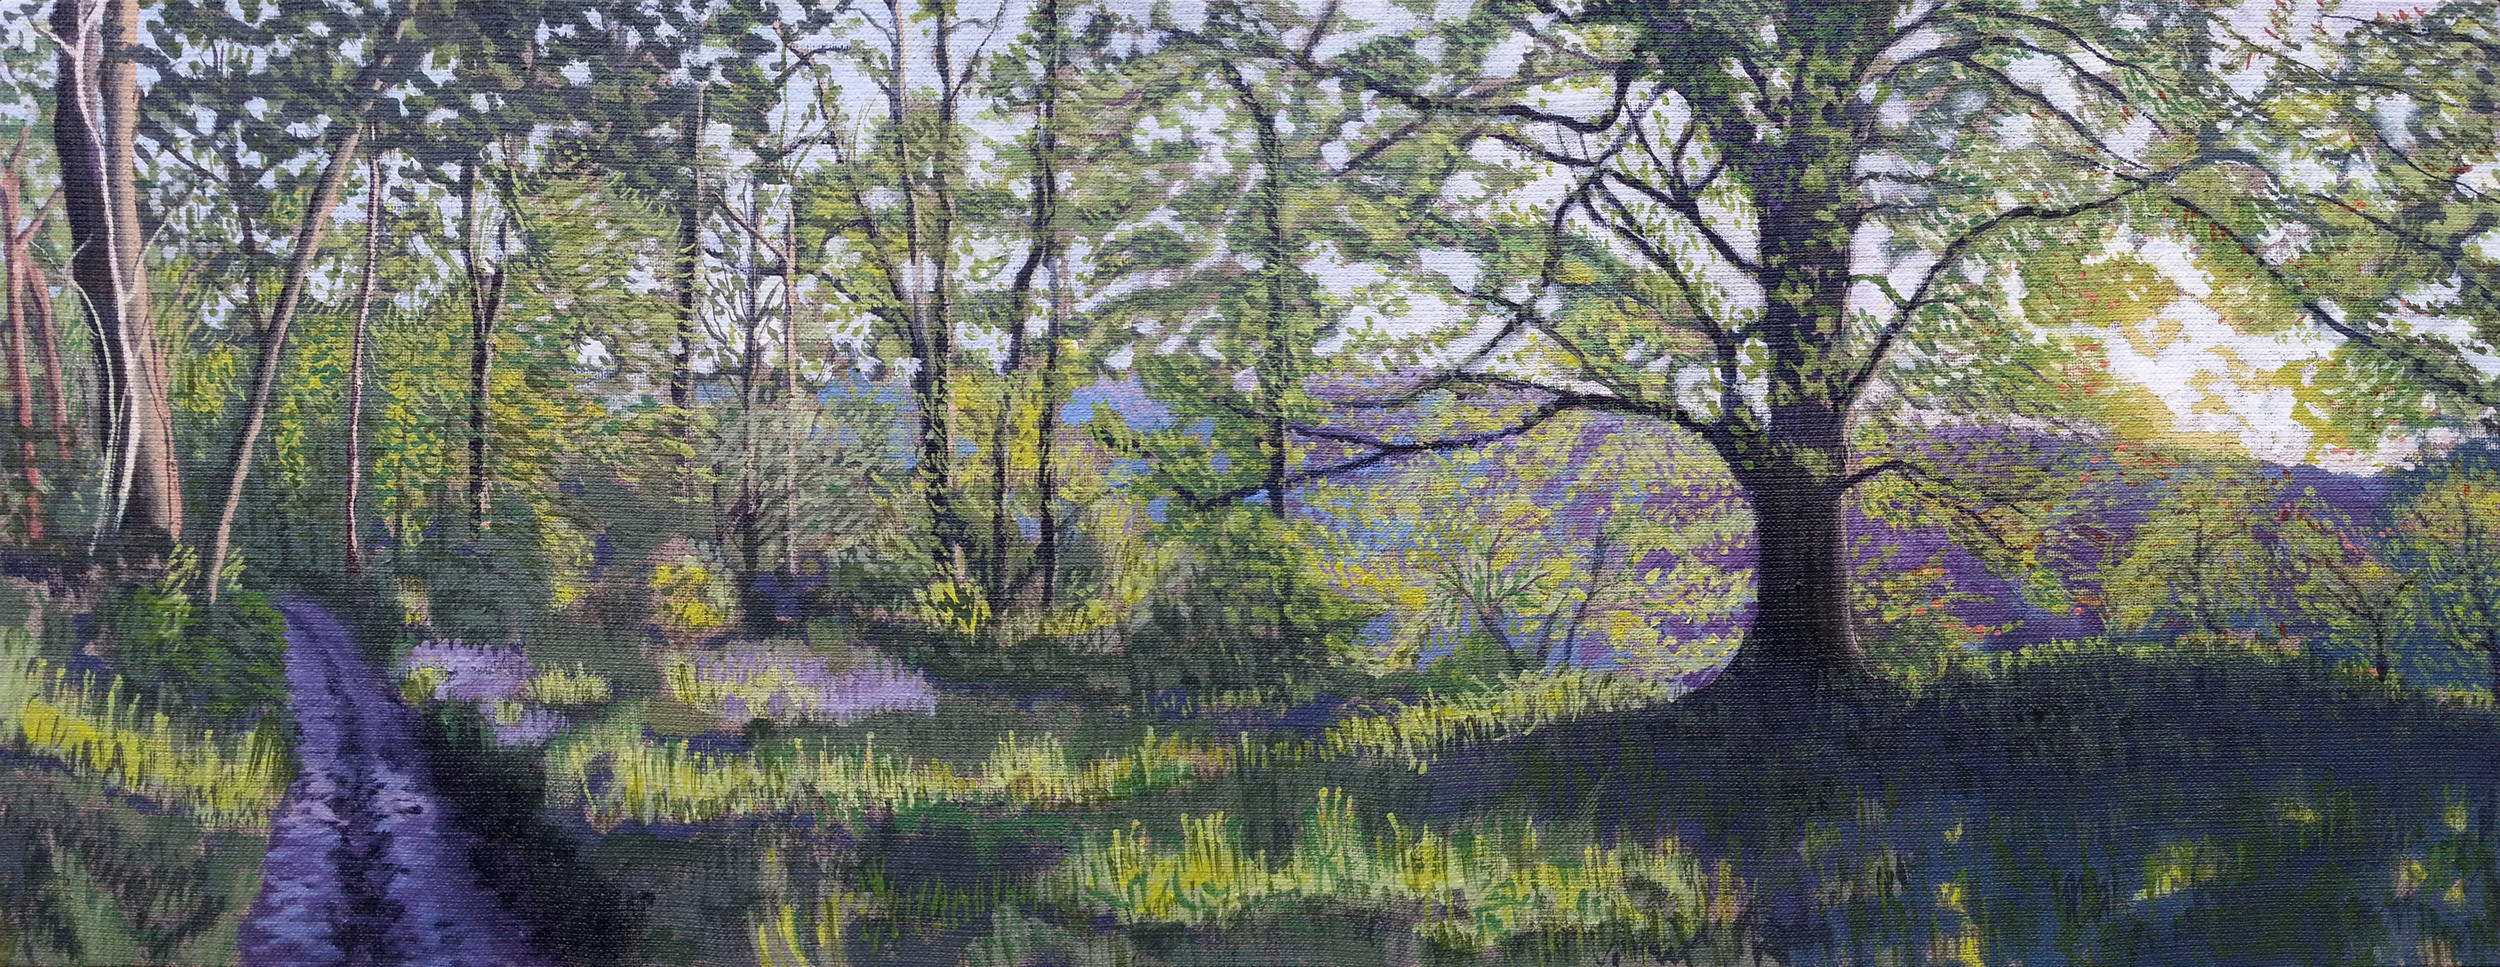 Bluebells on Lewesdon Hill, West Dorset